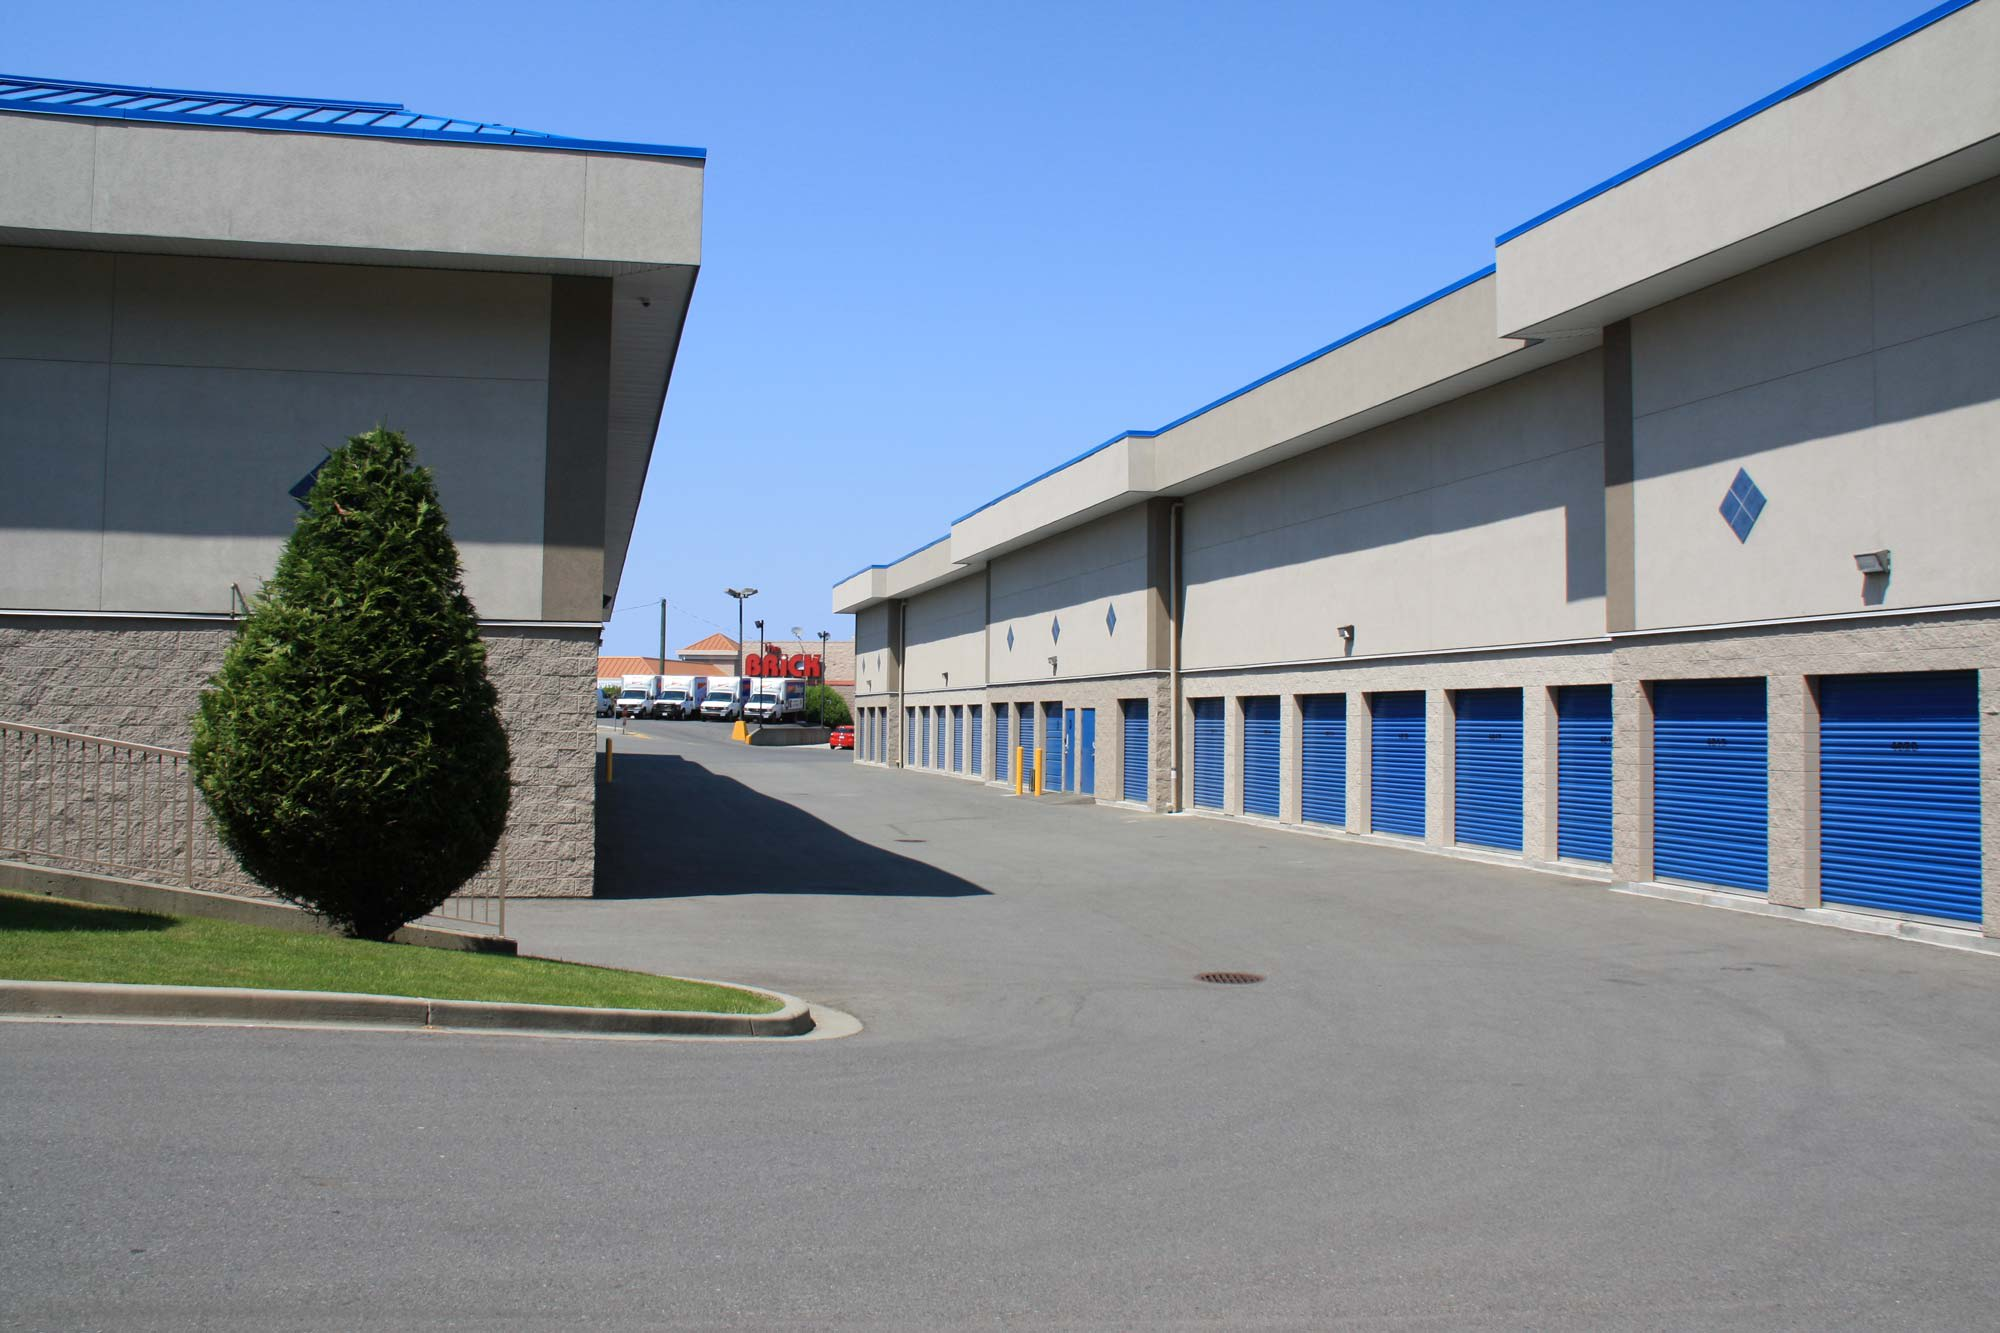 Exterior storage is available at Budget Self Storage